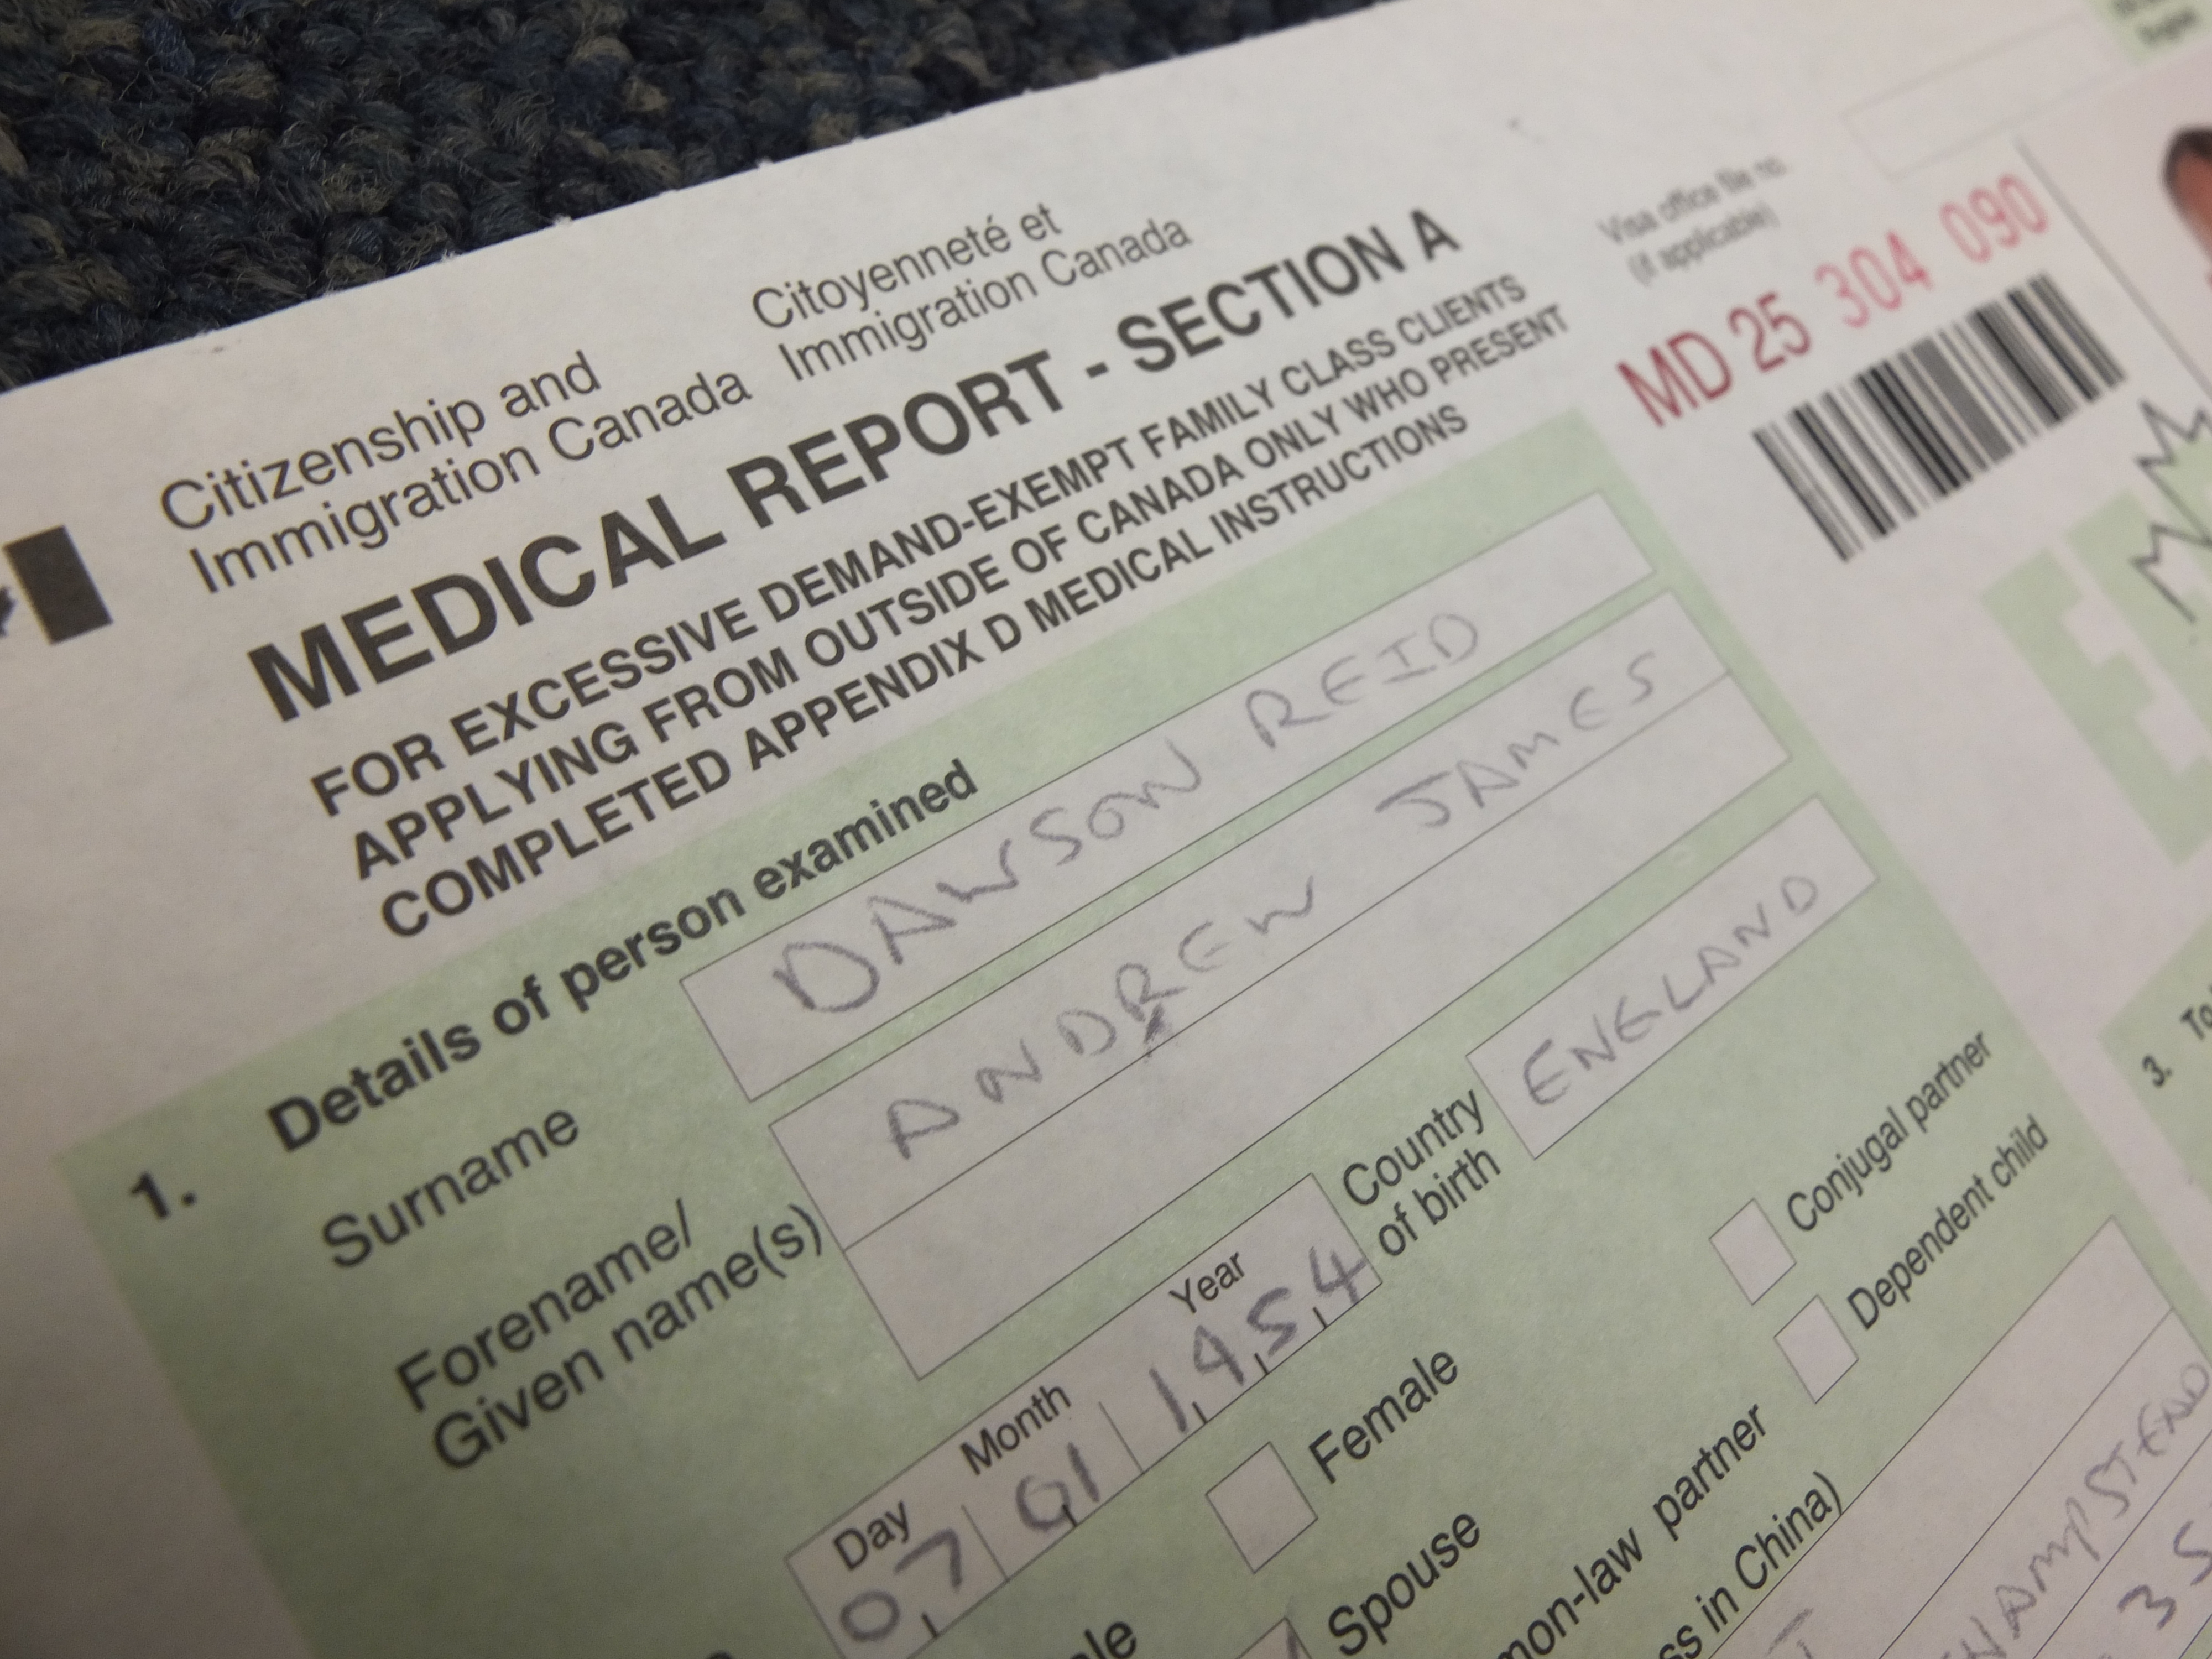 Medical Form IMM 10117 and new medical procedures